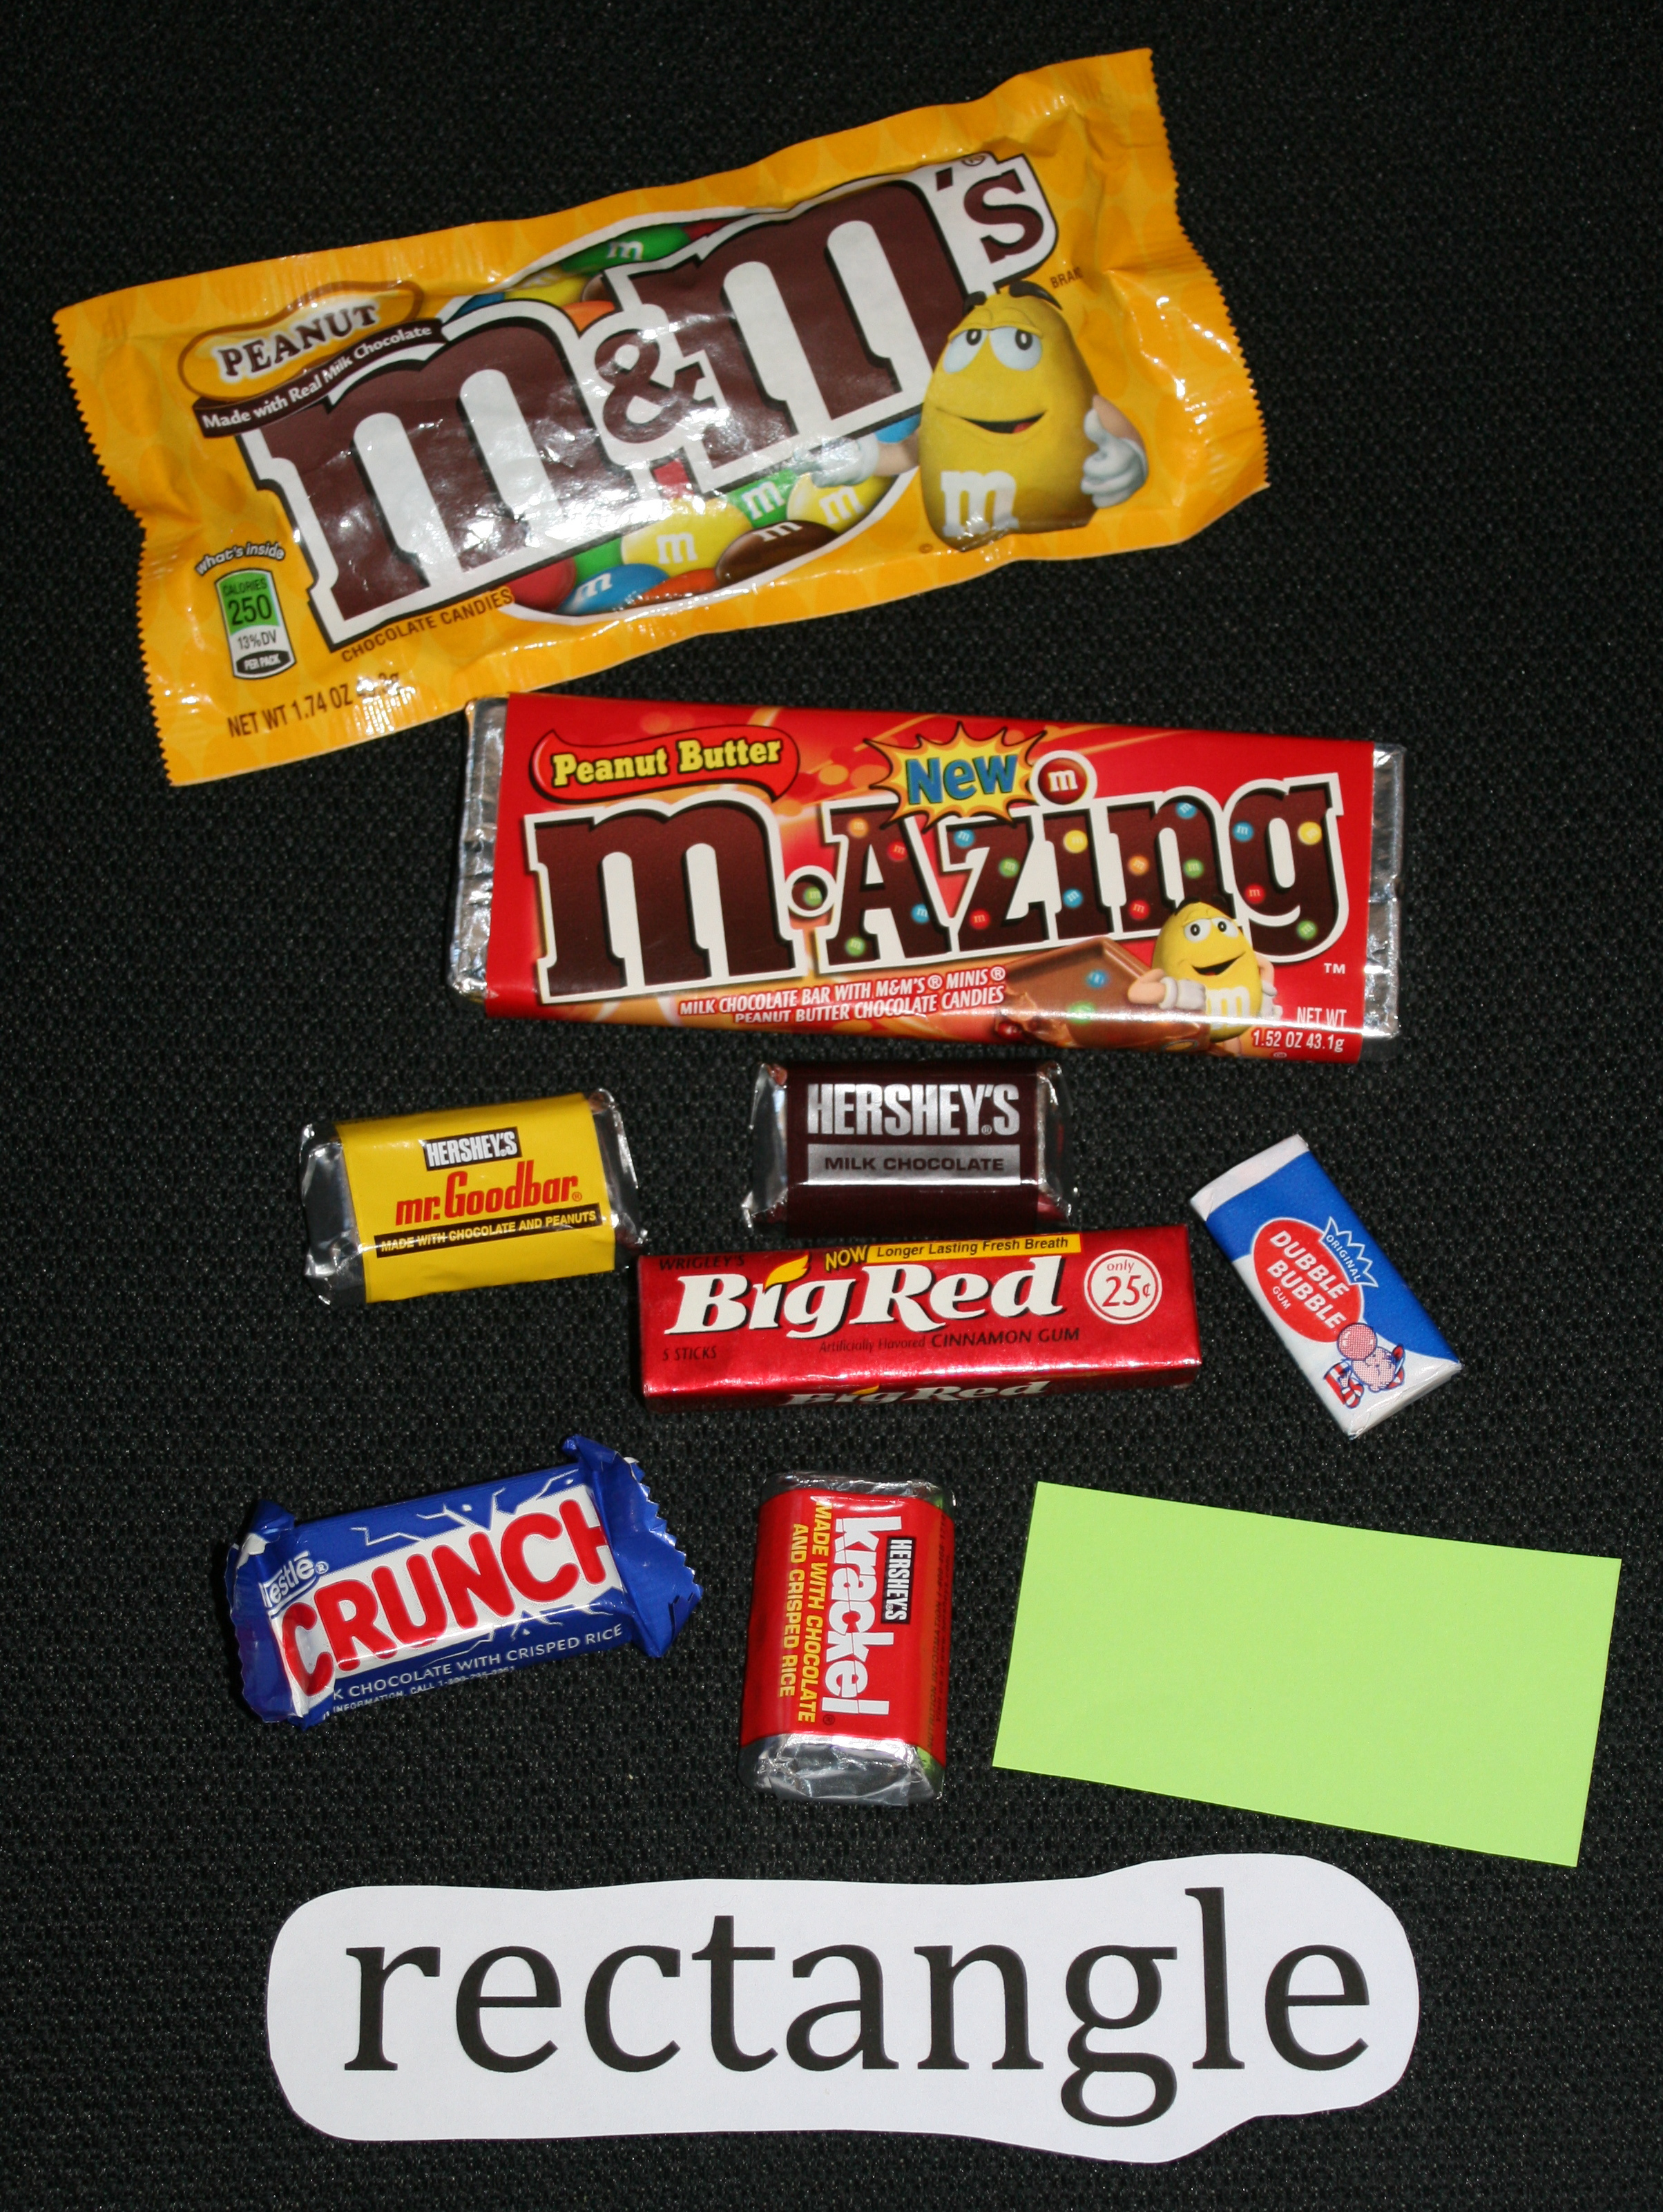 ick word family activities, eat word family activities, Halloween activities, common core halloween, shape activities, shape posters, 3D shape activities, 2D shape activities, candy shapes, 158 words made from trick or treat, how many words can you make from trick or treat list,posters of candy shapes